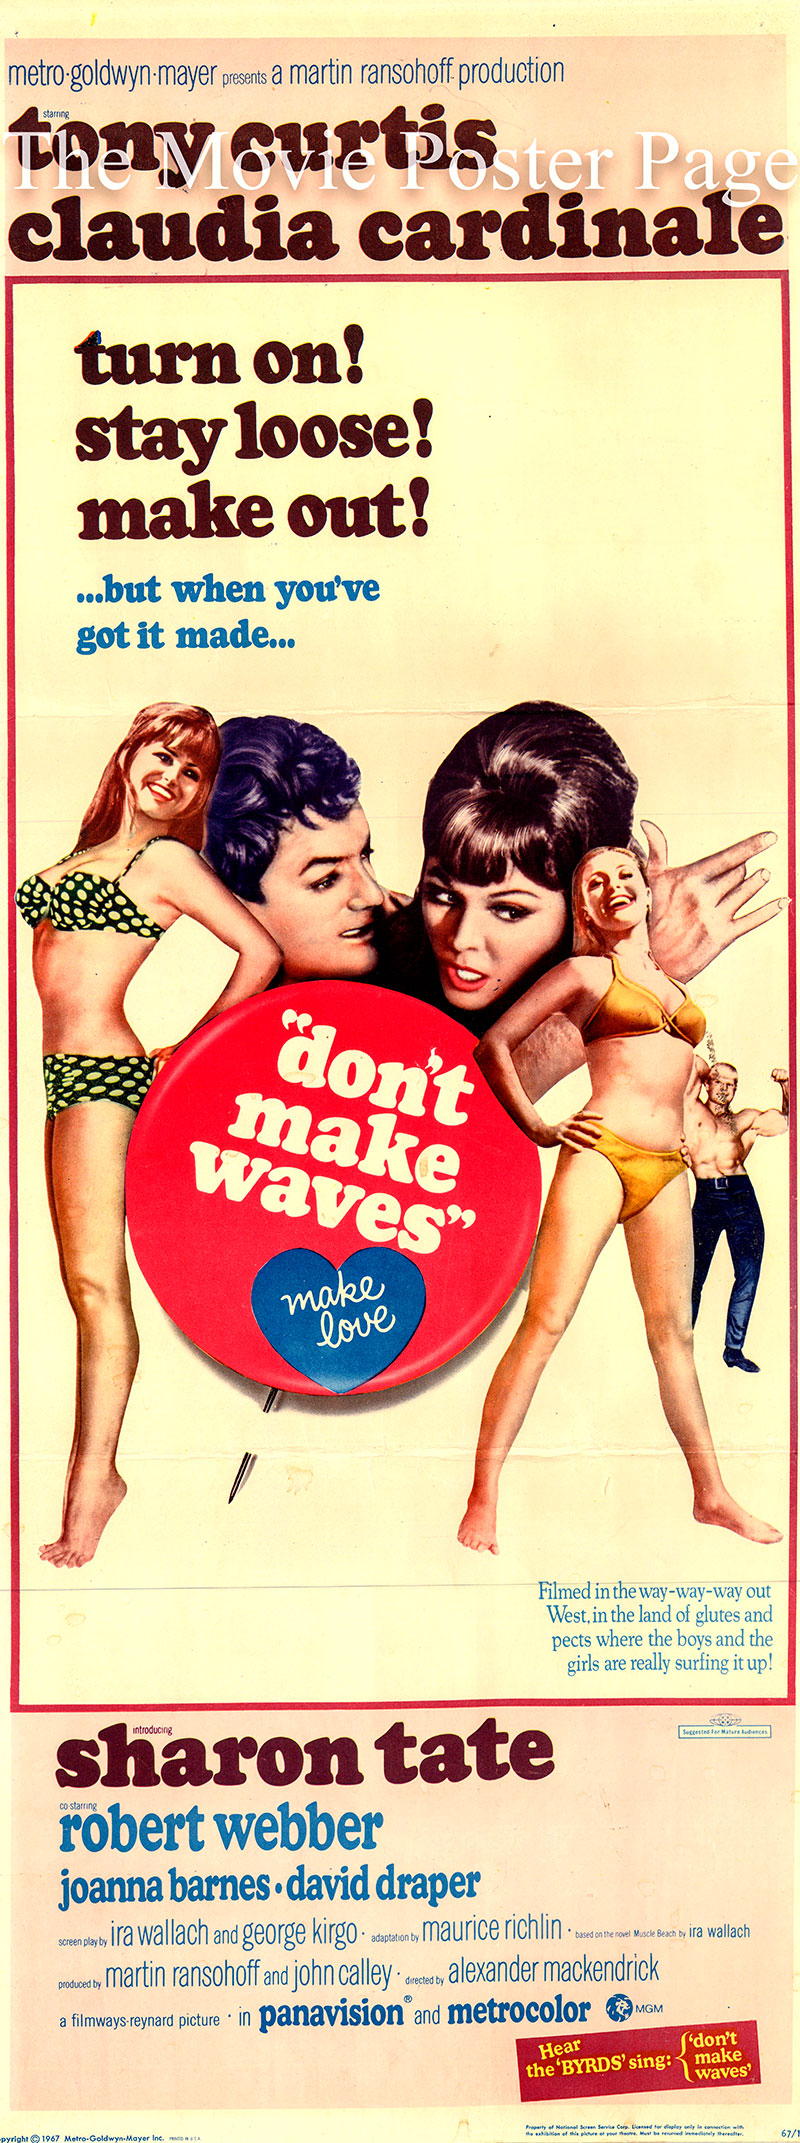 Pictured is a US insert poster for the 1967 Alexander Mackendrick film Don't Make Waves starring Tony Curtis as Carlo Cofield.